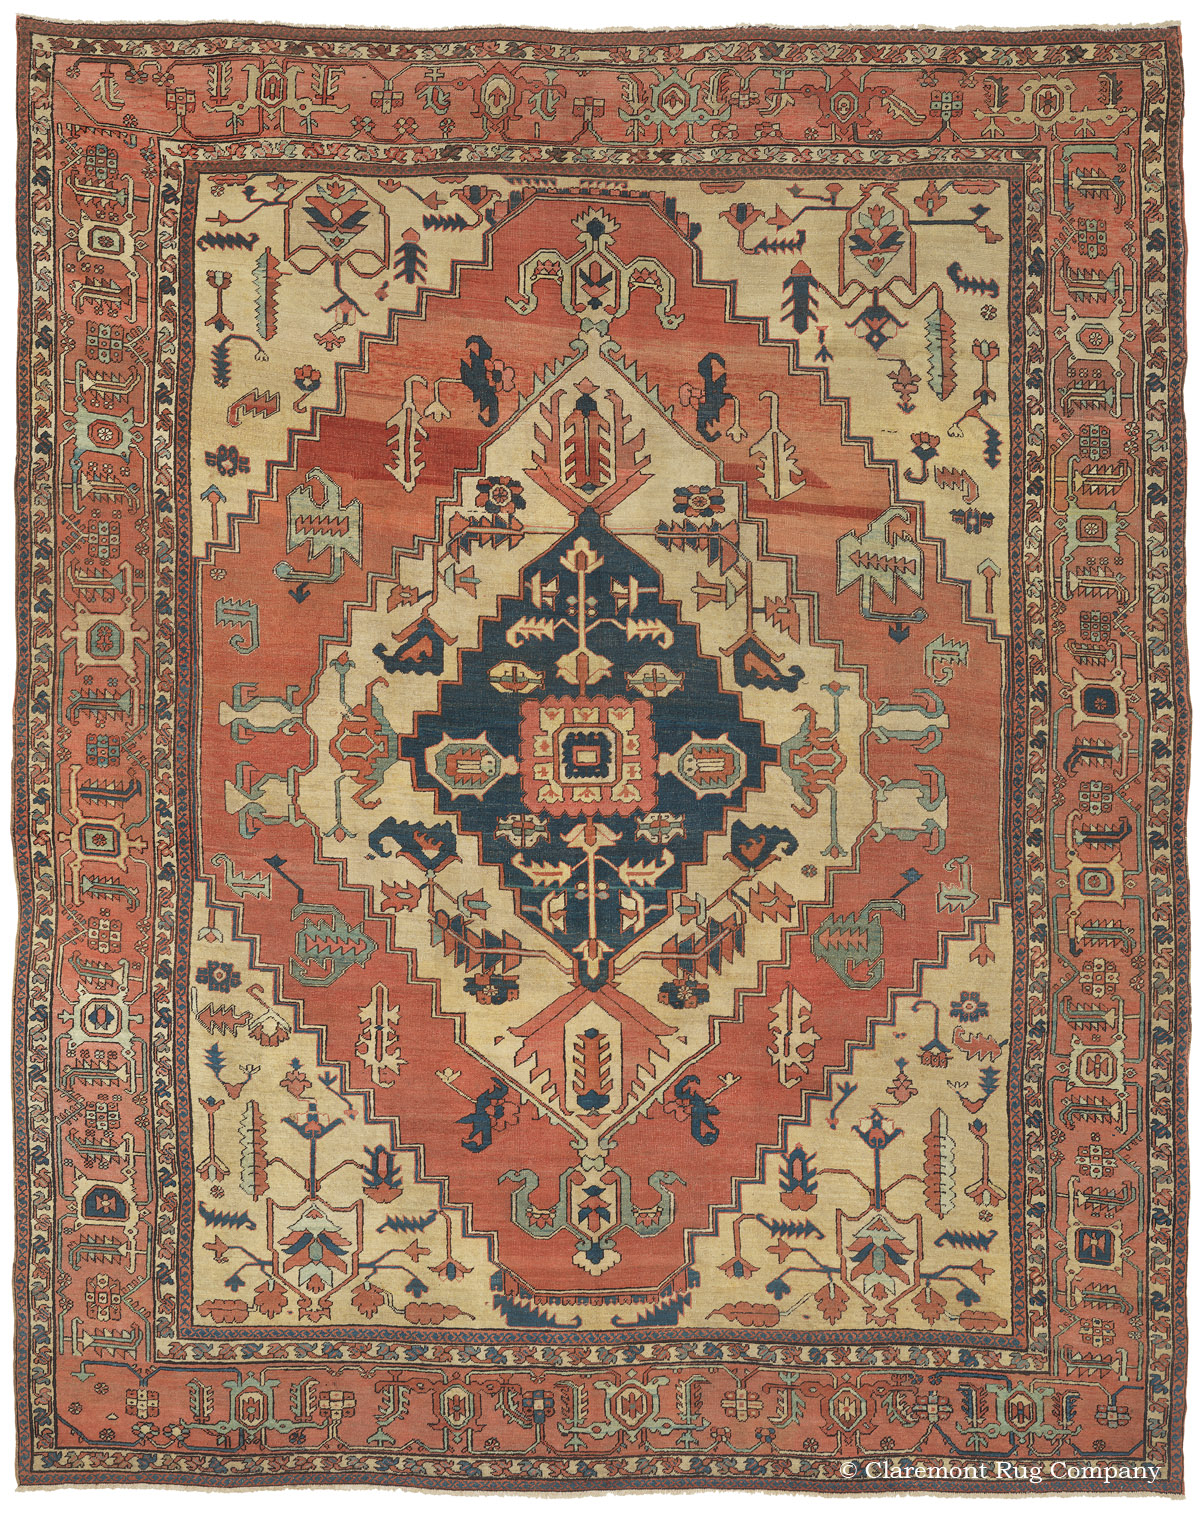 Fine 19th Century Serapis Include Some Of The Most Rare And Desirable Large  Size Decorative Carpets. Woven In The Rugged Mountains Of Northwest Persia,  ...